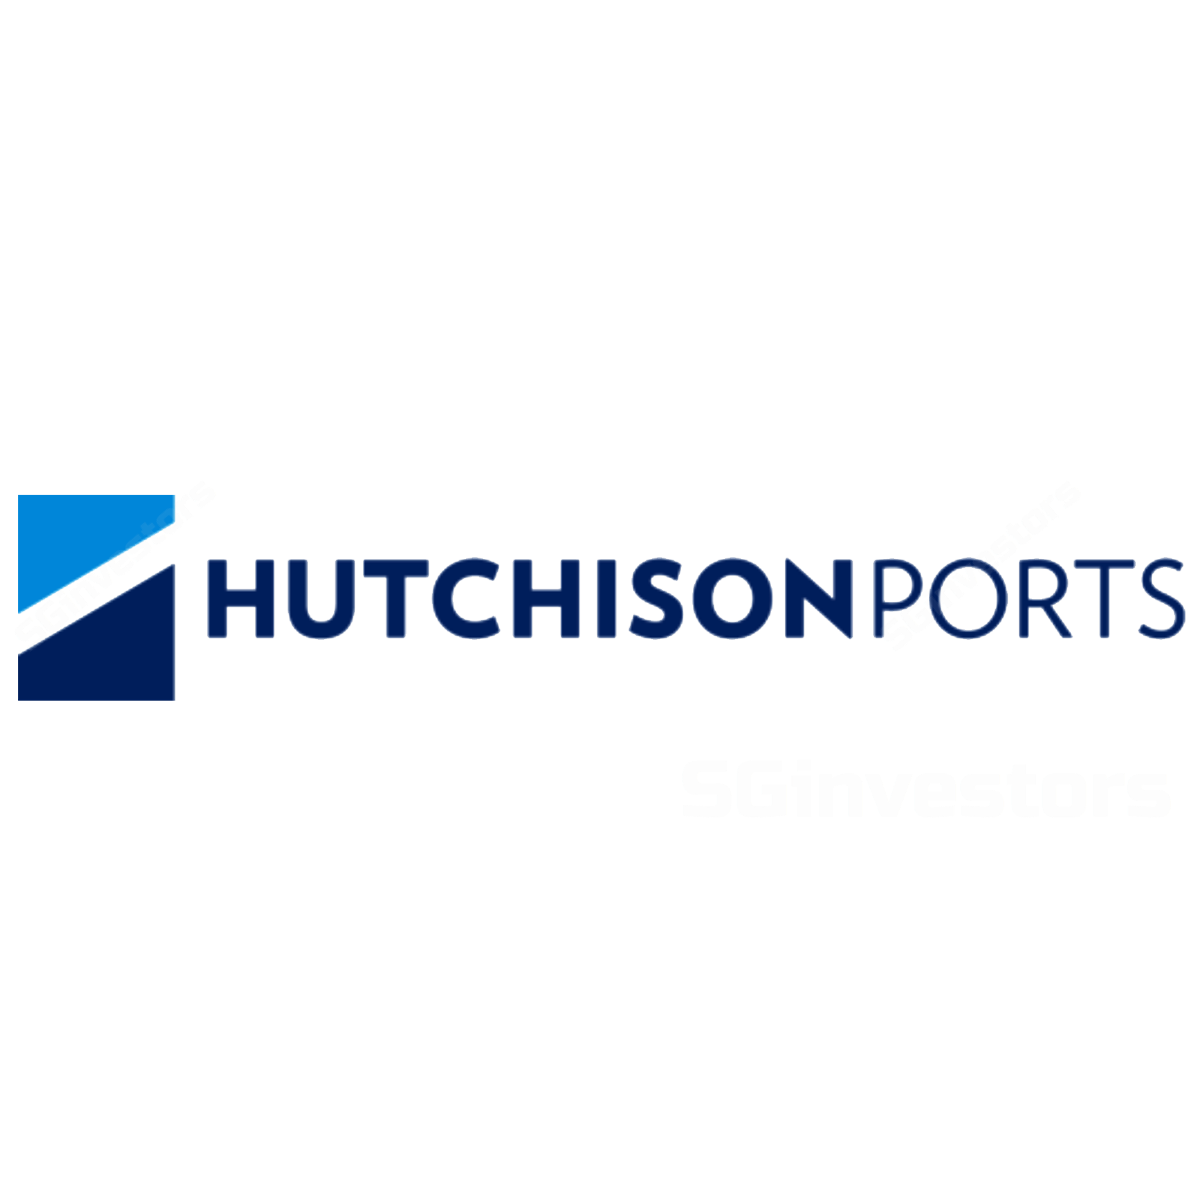 Hutchison Port Holdings Trust - DBS Vickers 2017-04-26: A Slow Start to 2017